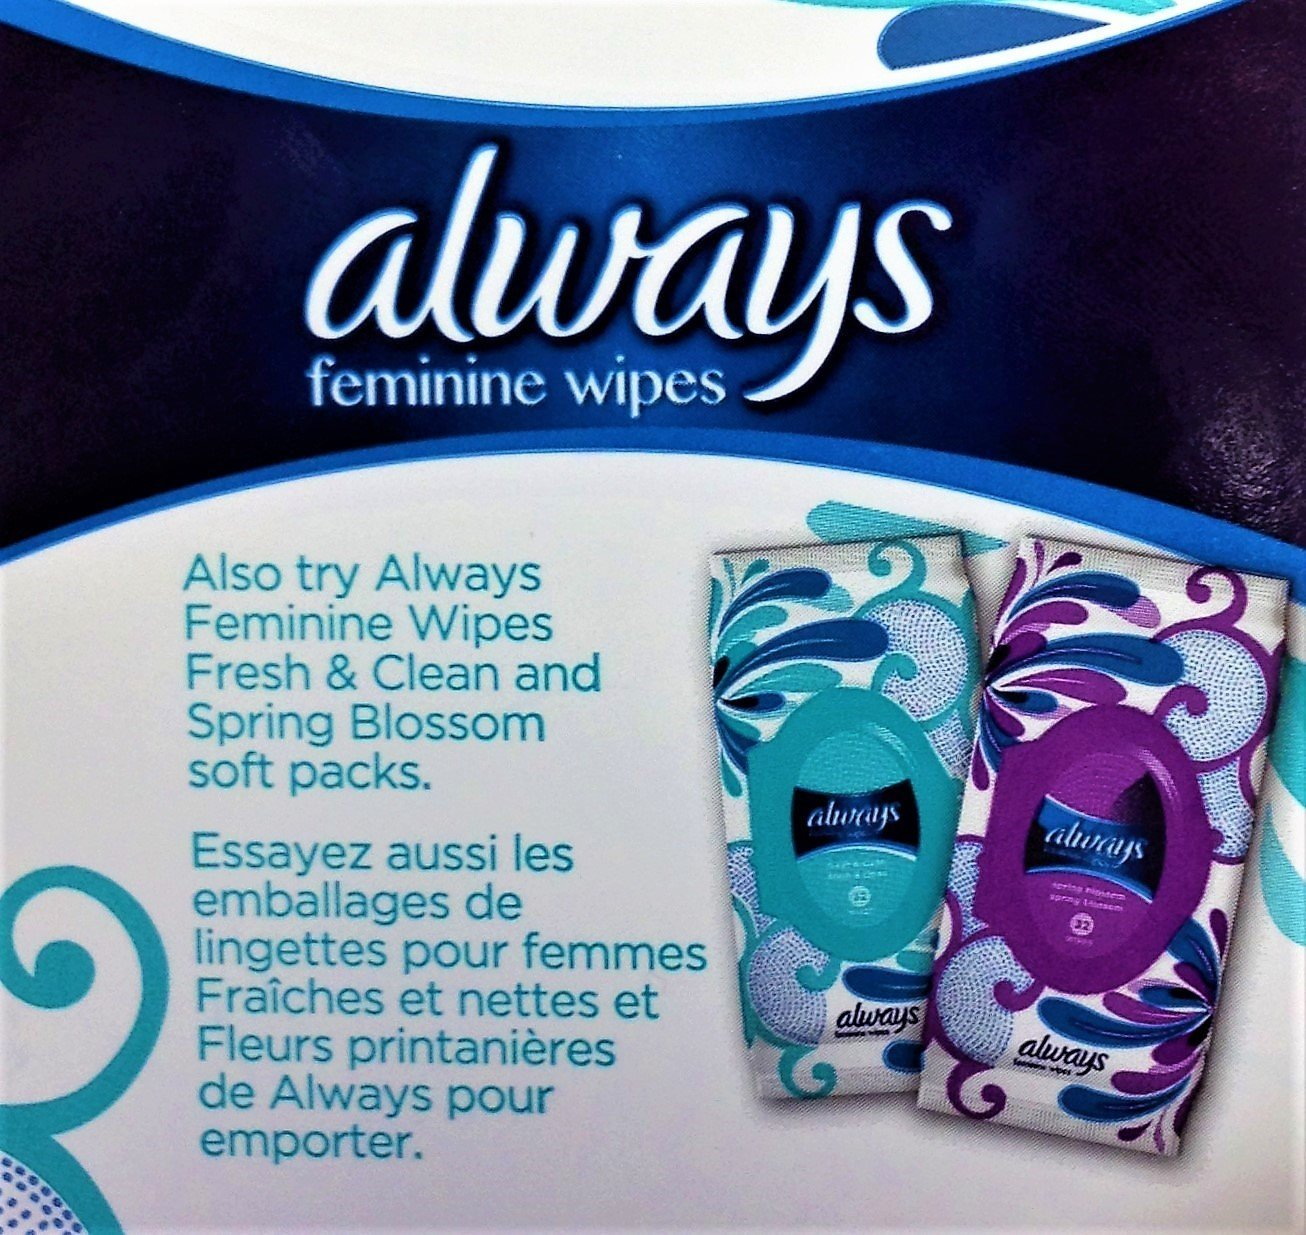 Amazon.com: Always - Feminine Wipes-to-Go Multipack - Pack of Three, 20 Count per Pack: Health & Personal Care